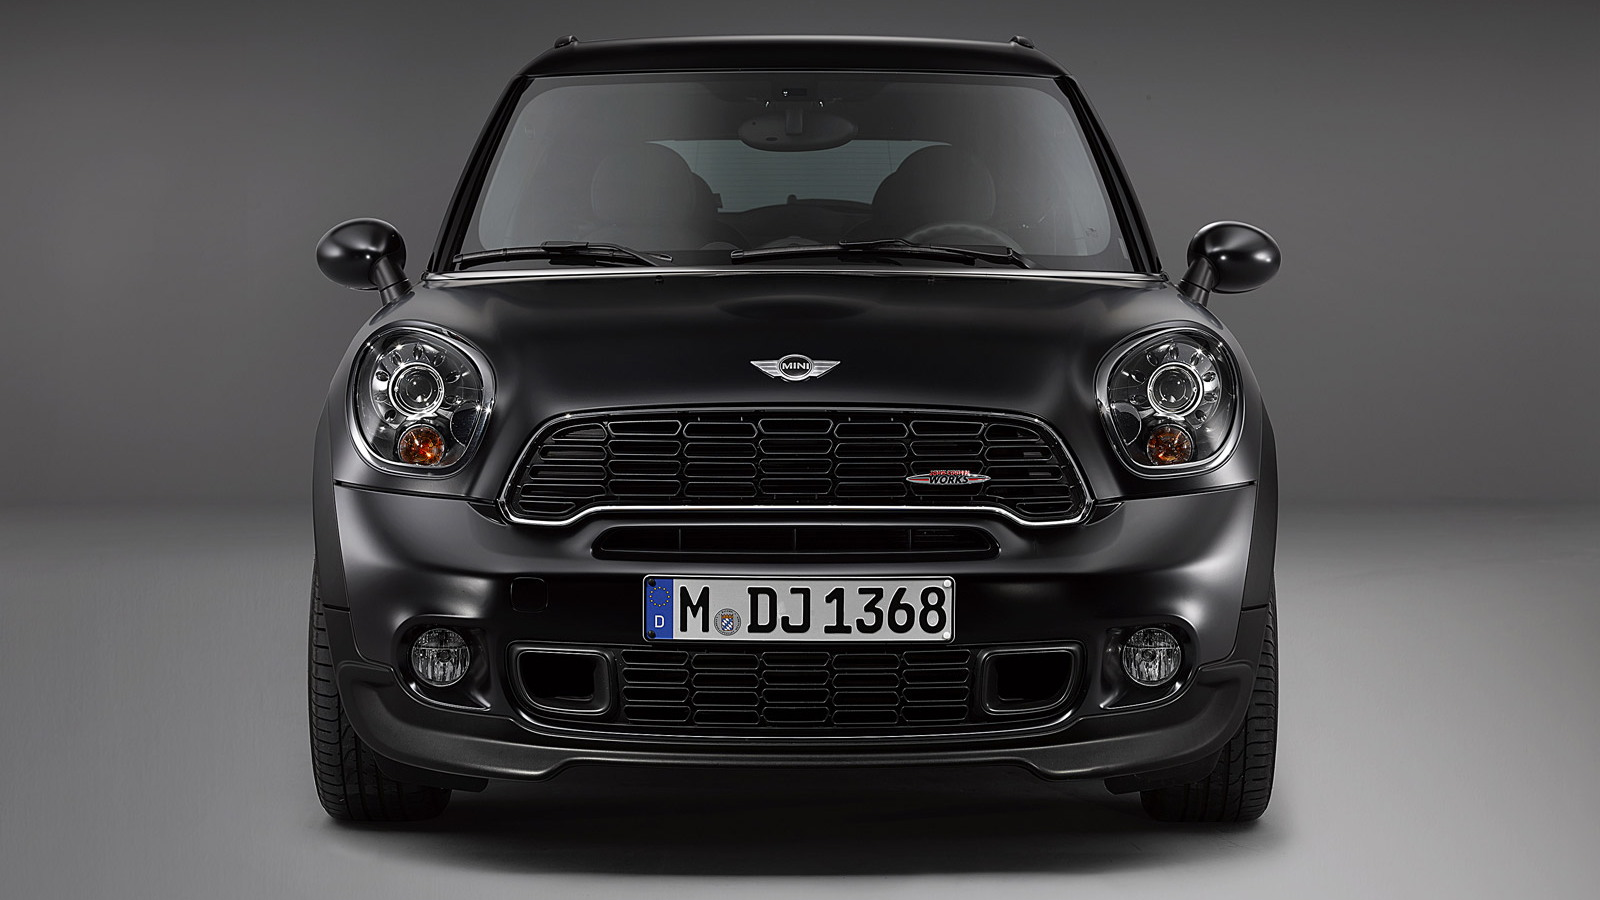 2014 MINI John Cooper Works Paceman in Frozen Black matte paint